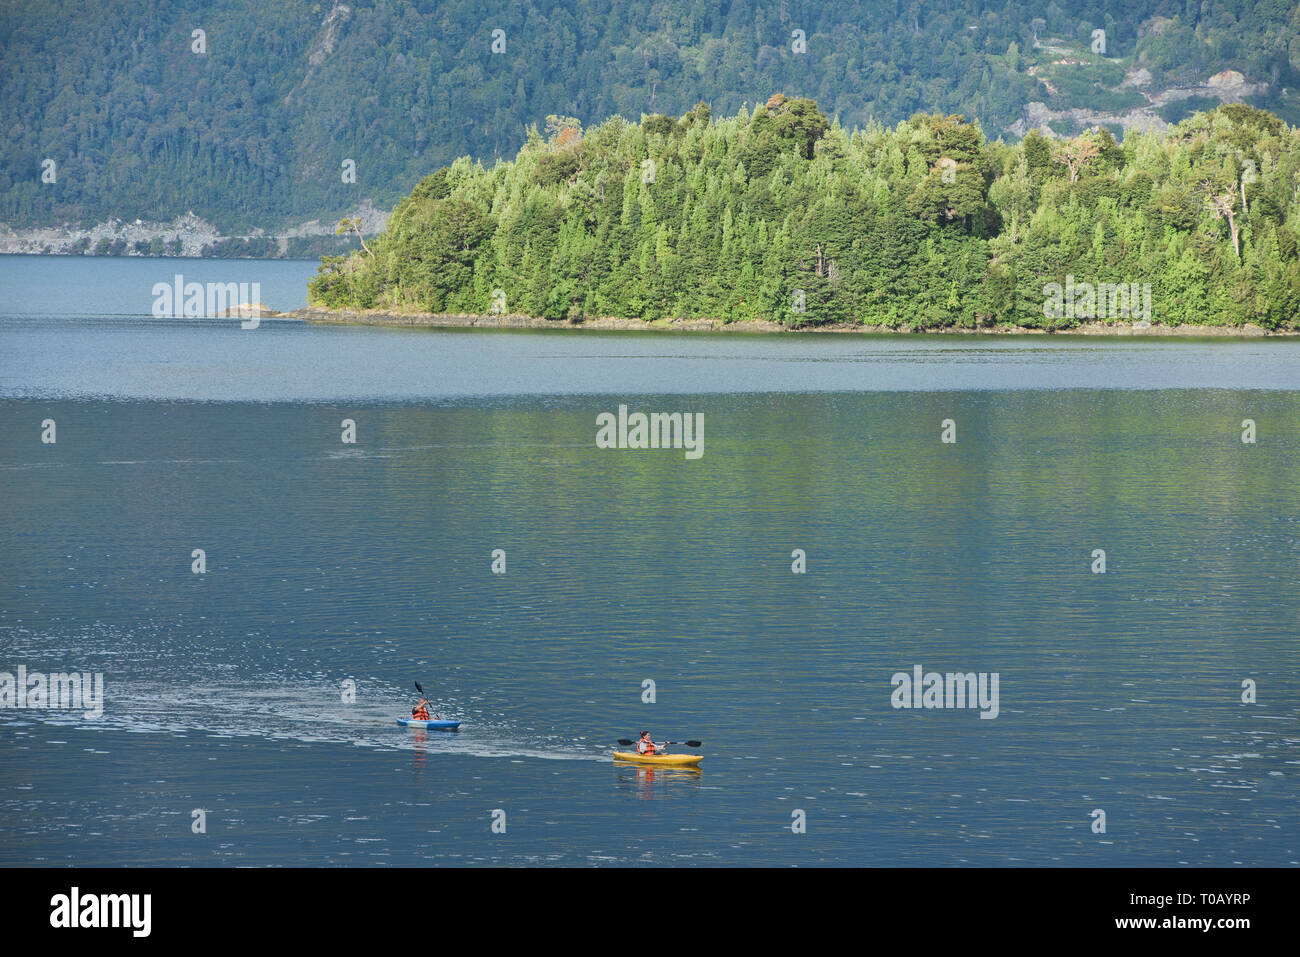 Kayaking the Puyuhuapi fiord in the Ventisquero Sound, Patagonia, Aysen, Chile - Stock Image